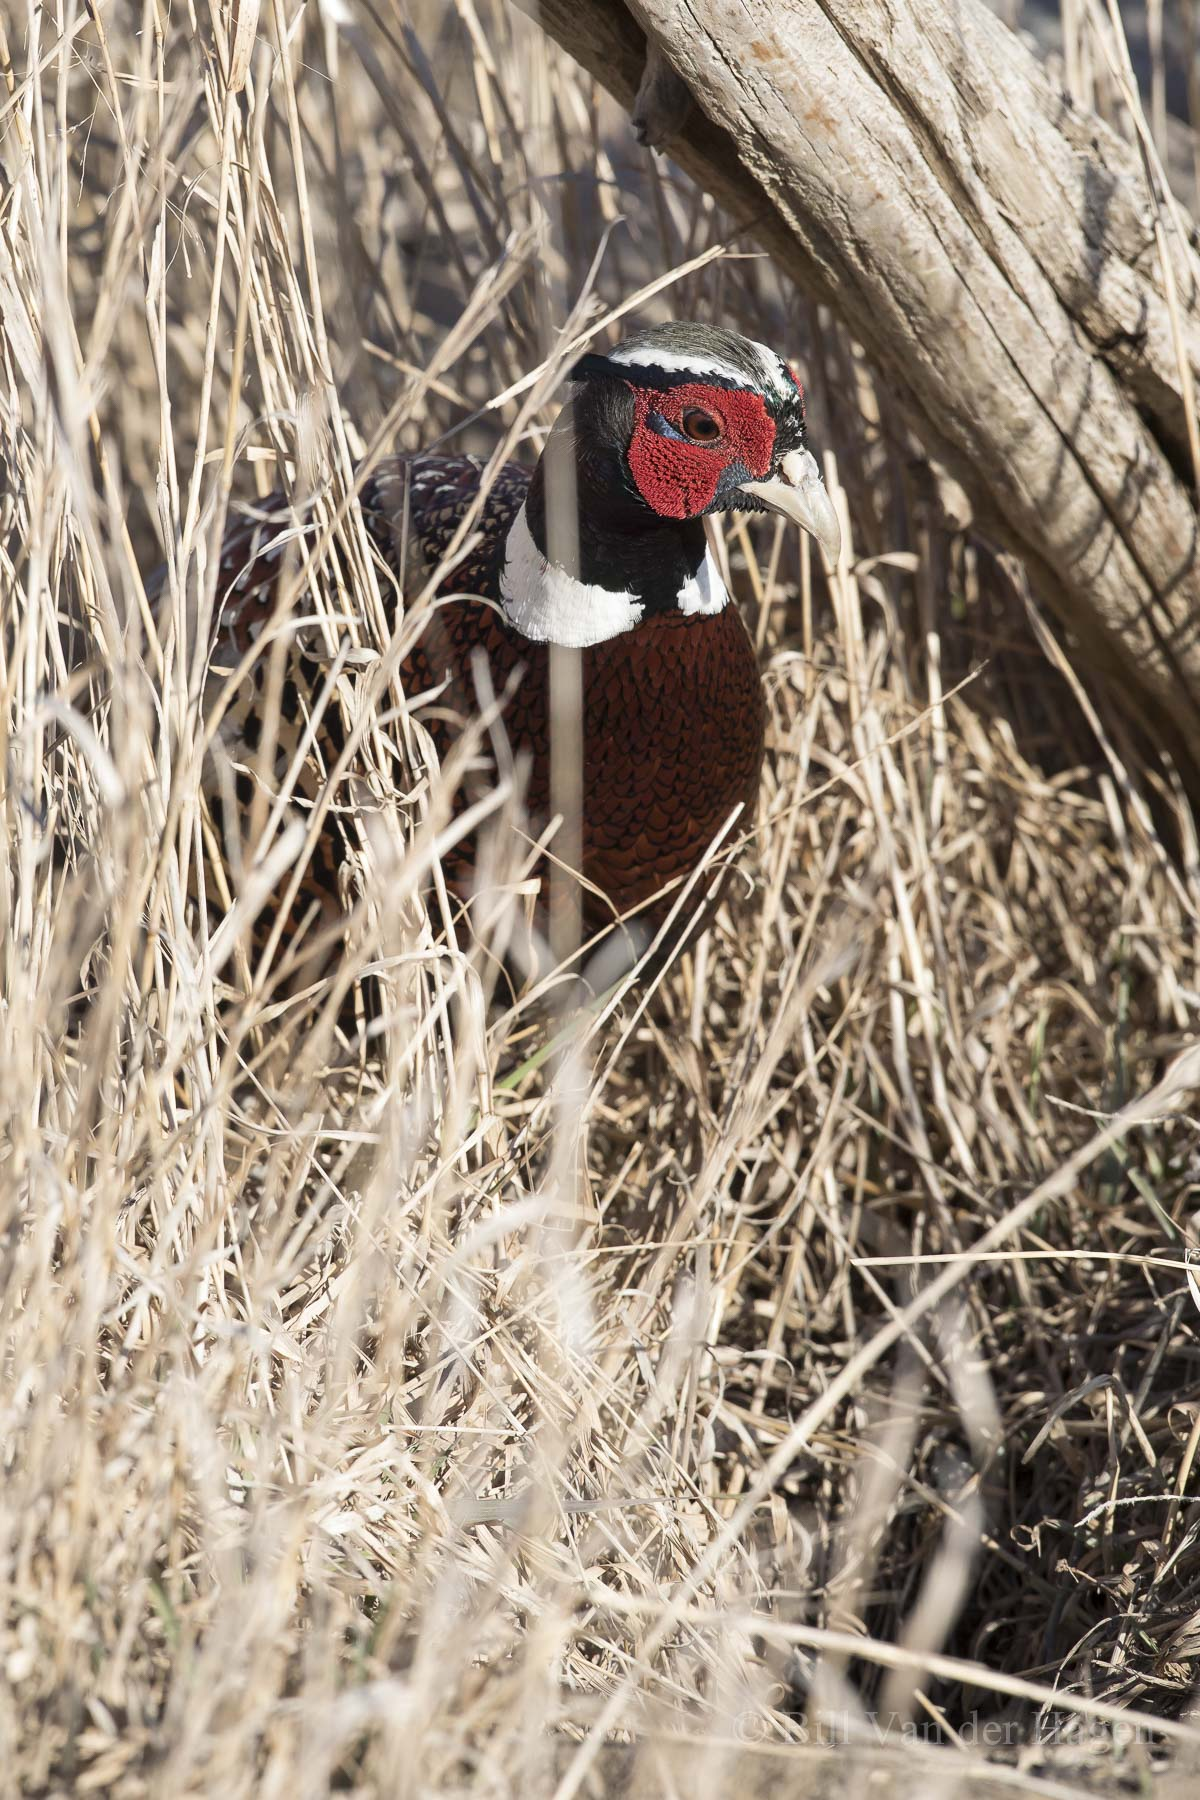 ringneck pheasant by fence post image